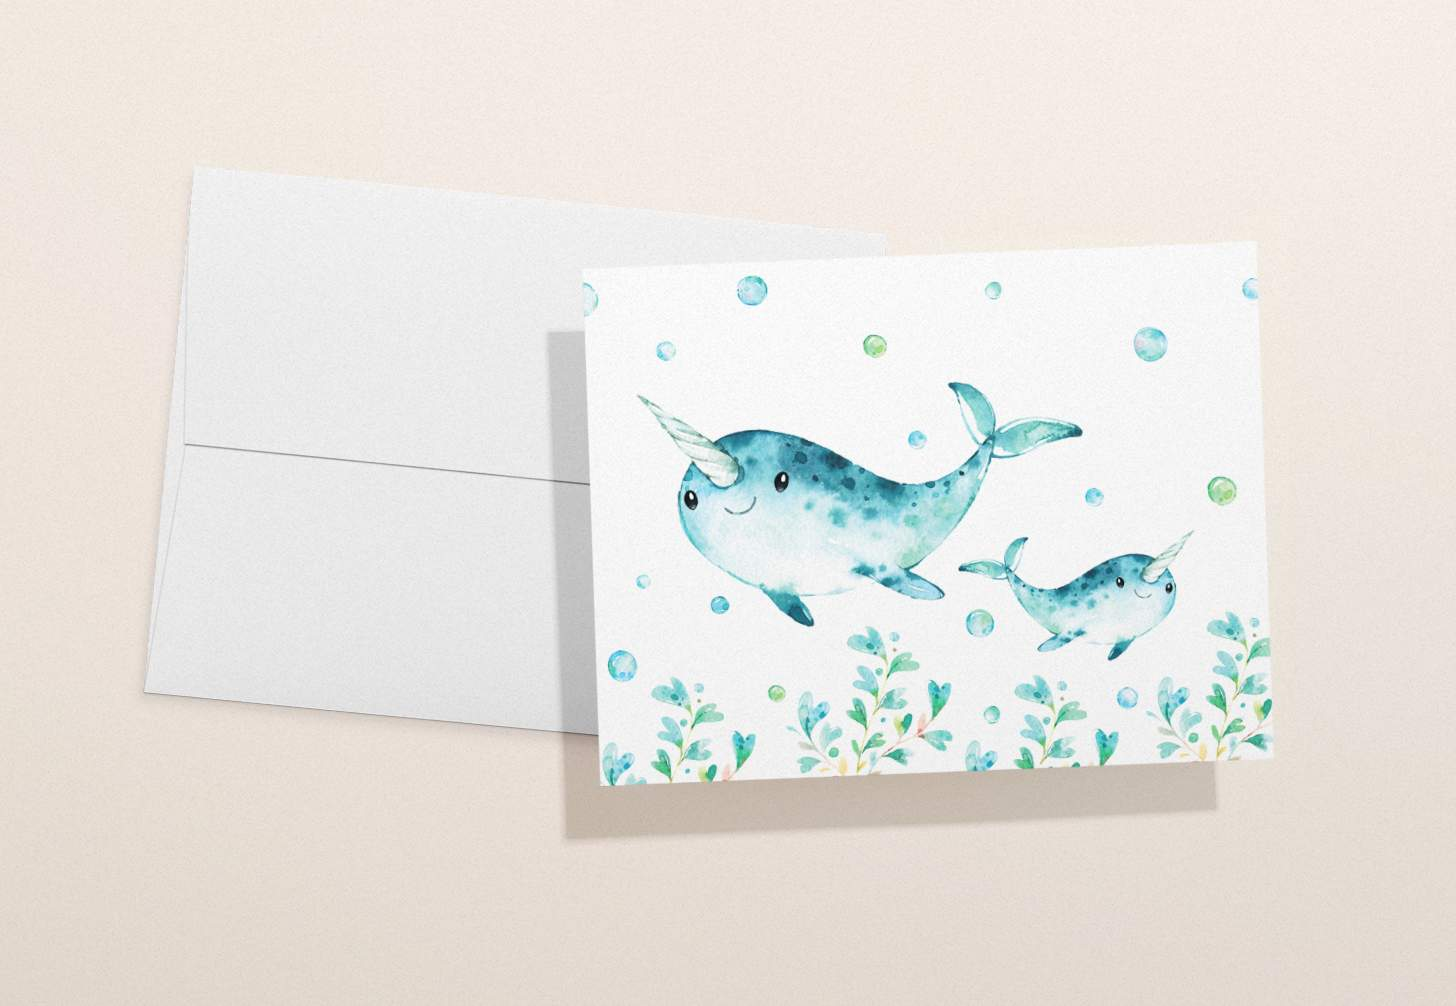 Mother and baby blue narwhal design with bubbles and a white envelope